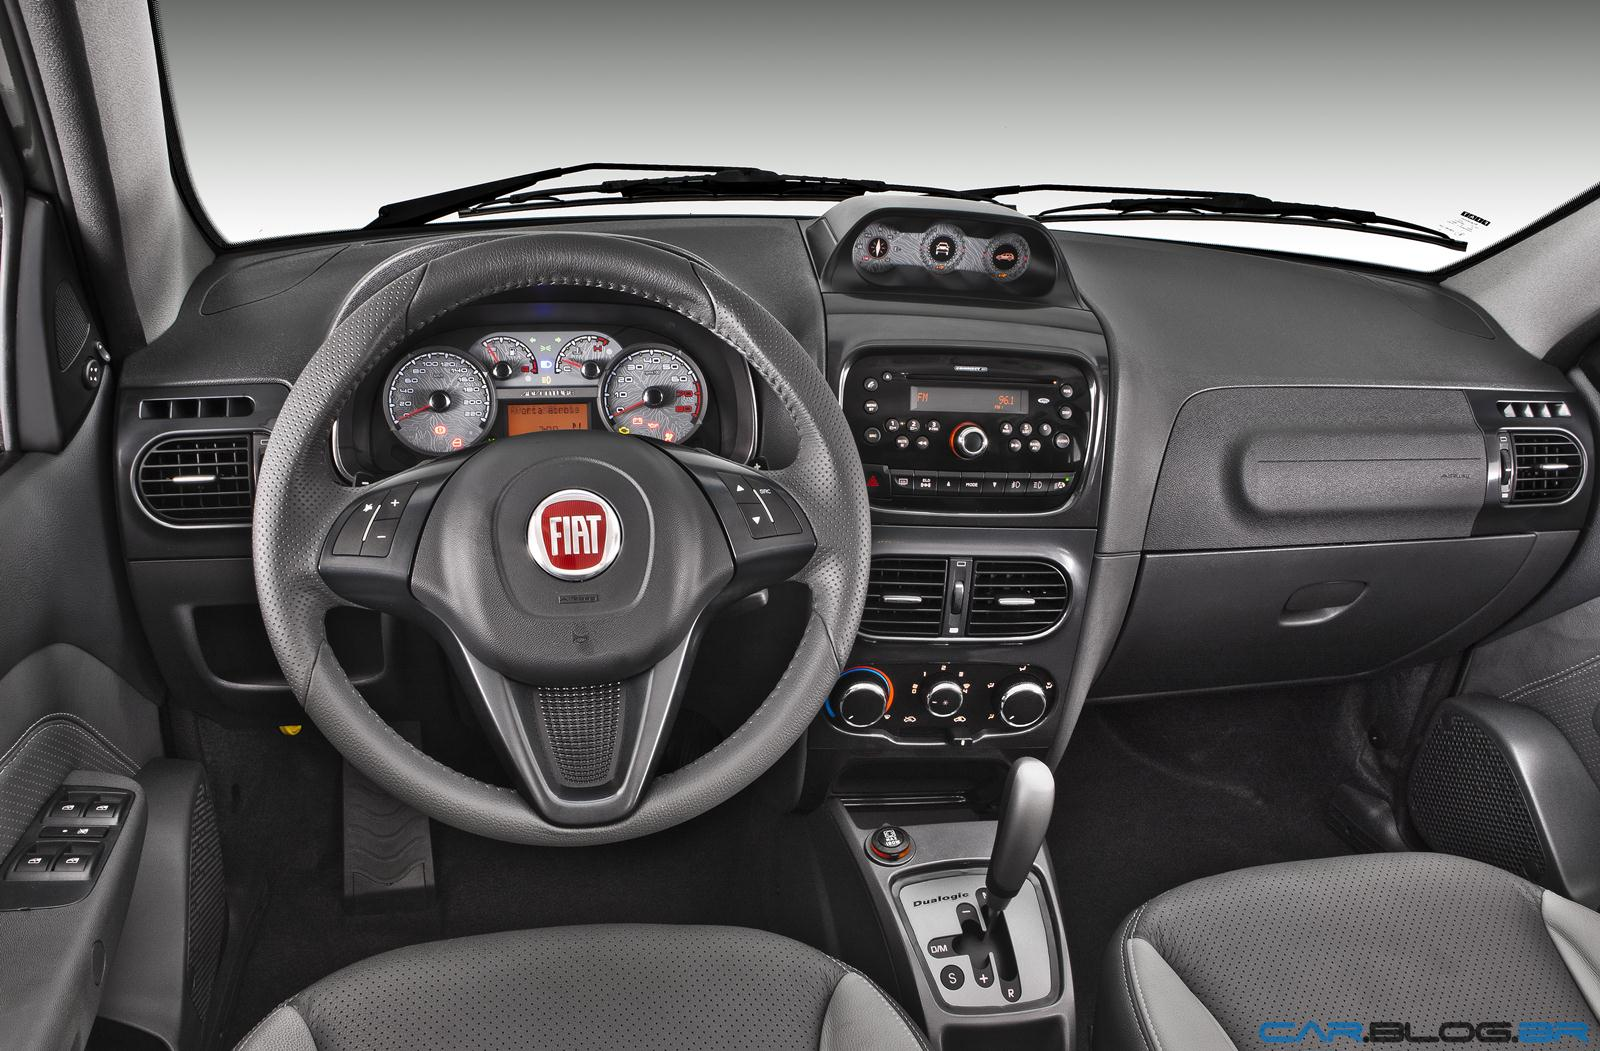 Novo fiat palio weekend 2013 attractive trekking e for Precio fiat idea attractive 2013